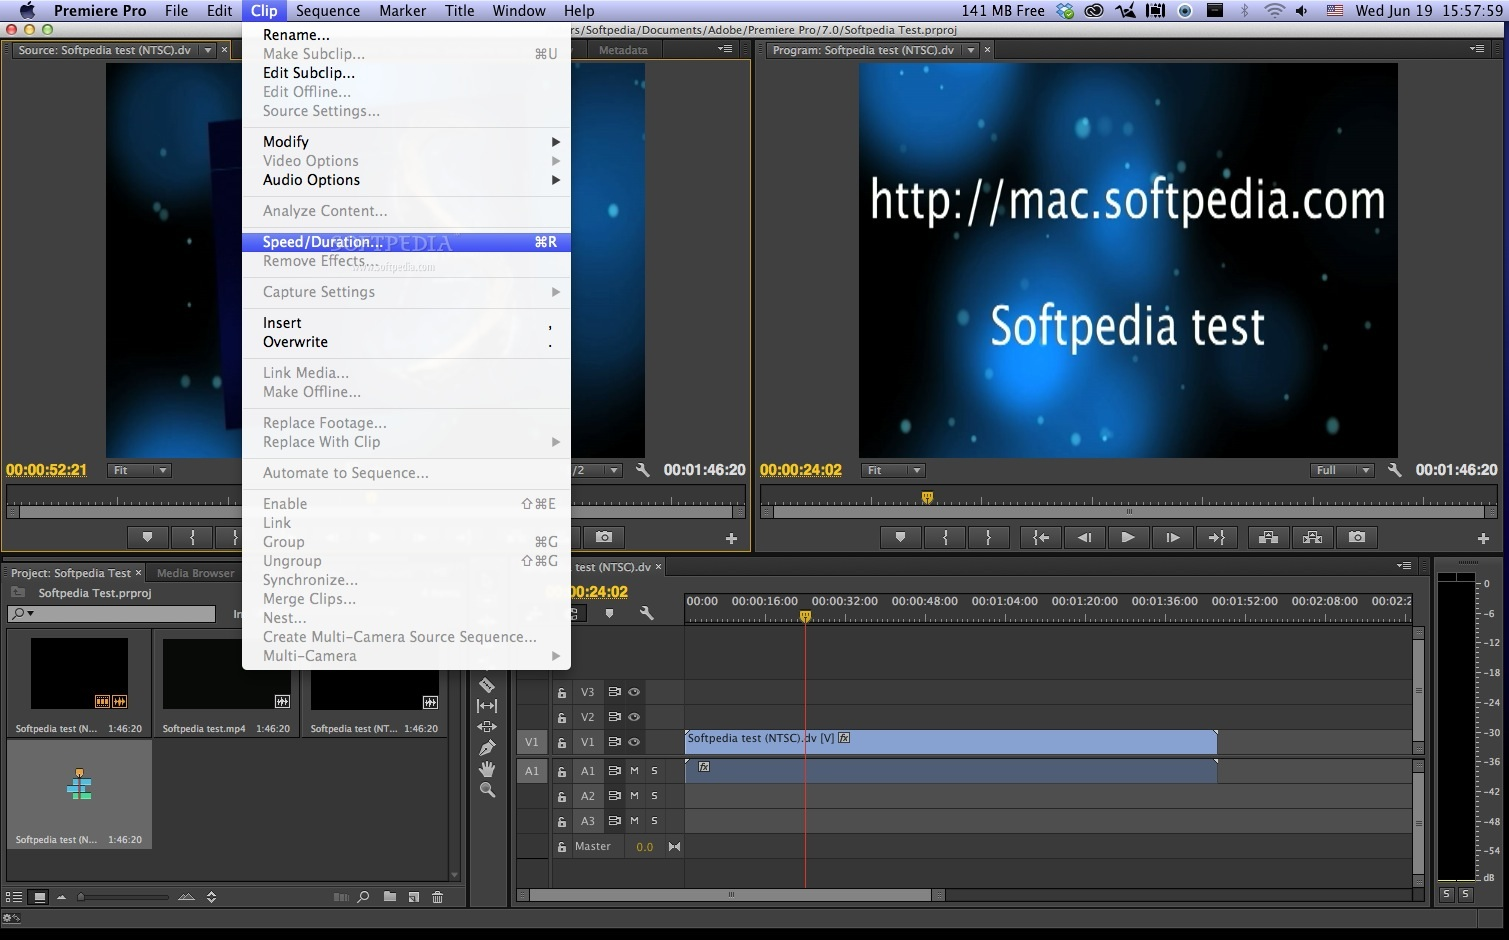 adobe premiere pro cs3 free download full version with crack for mac